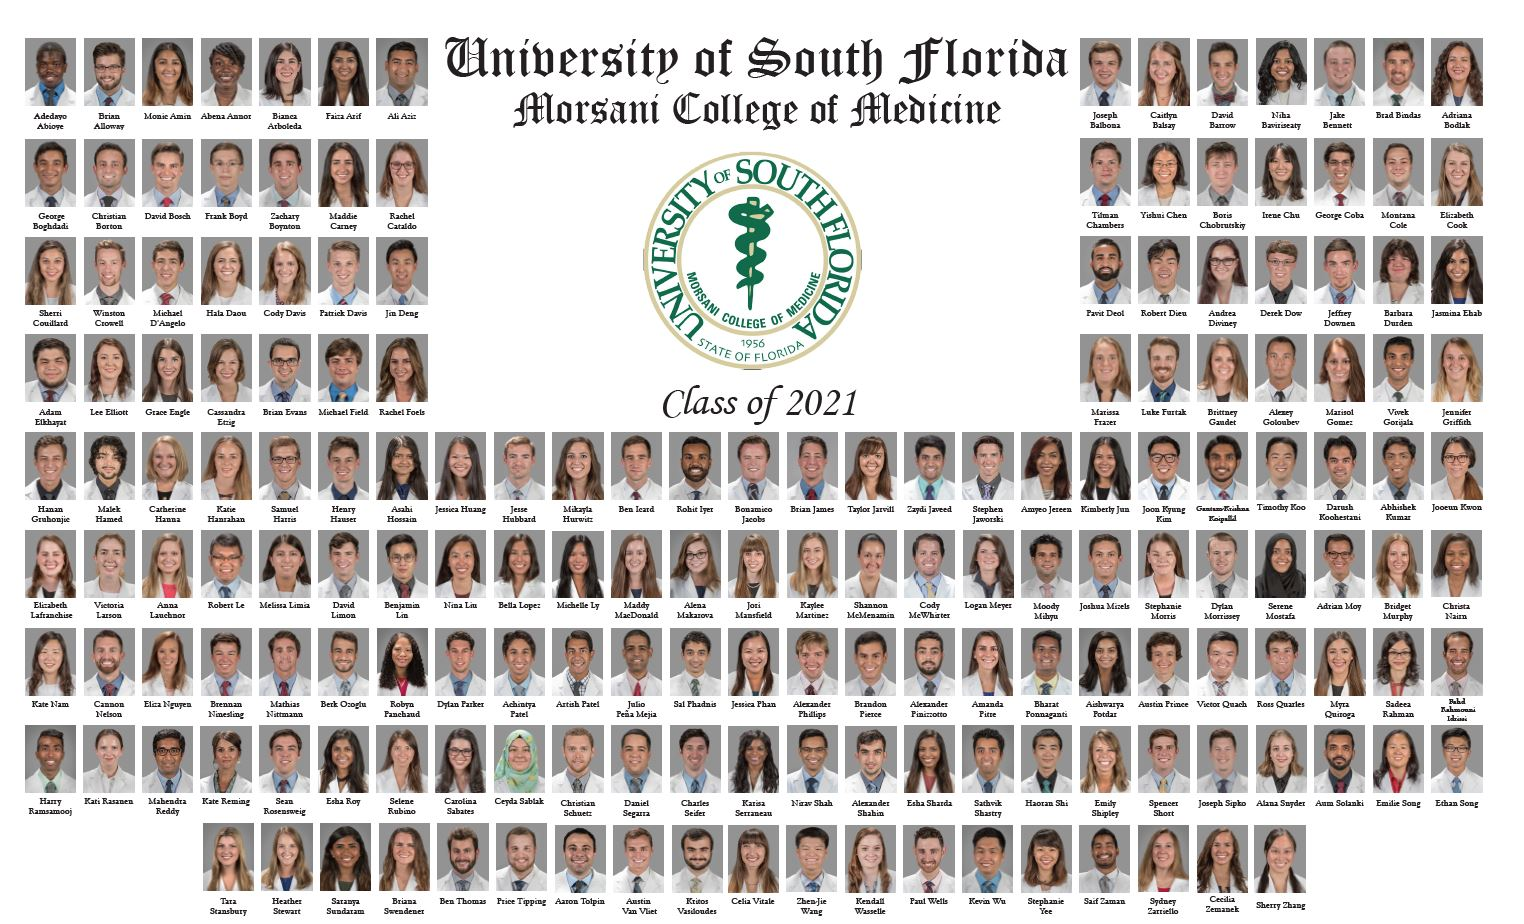 Usf Academic Calendar 2020 Class Pages & Composites | USF Health